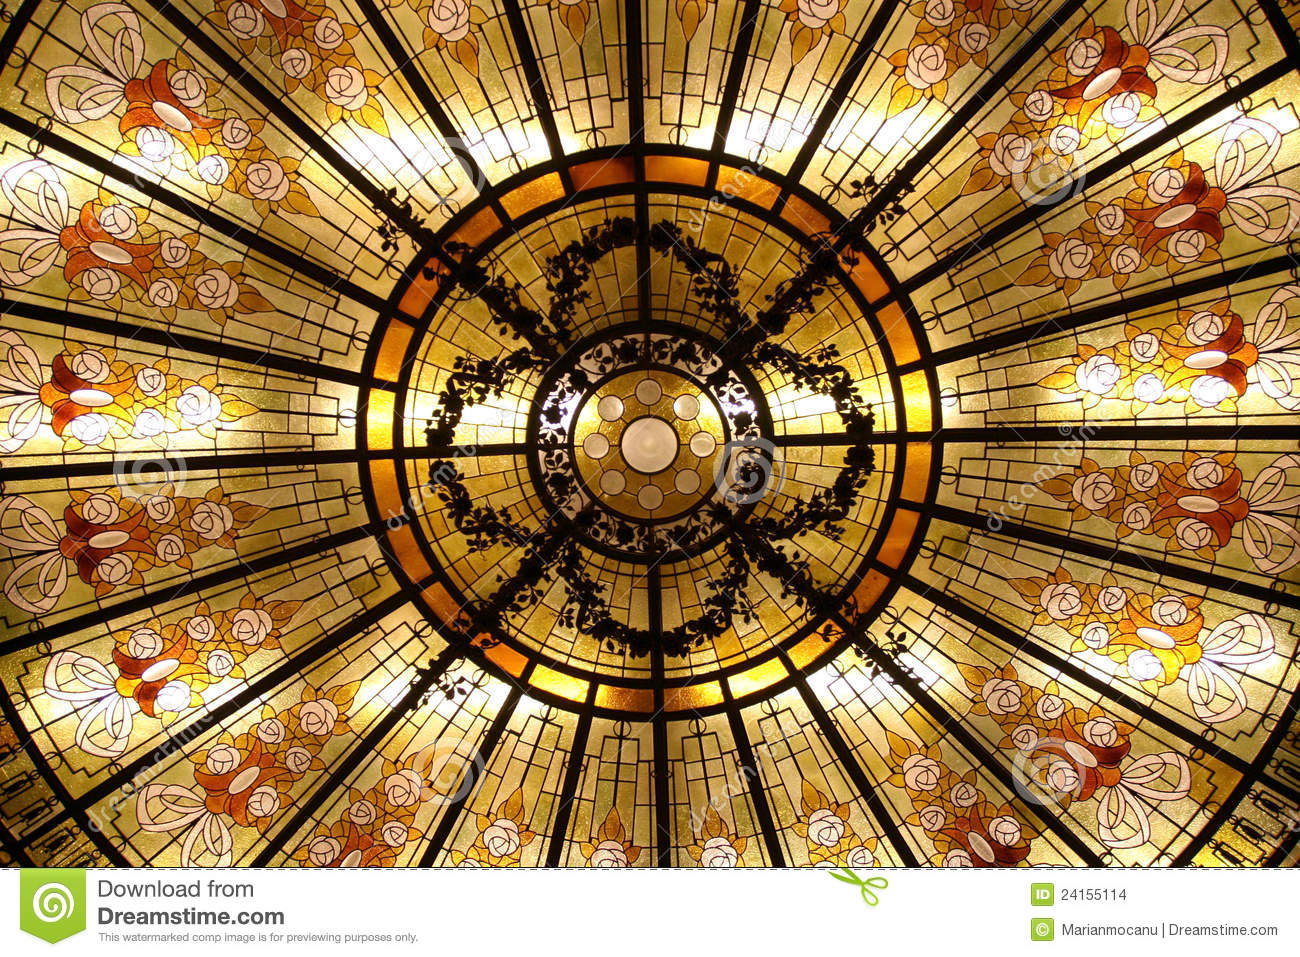 Stained Glass Dome Stock Photo. Image Of Flowers, Mosaic